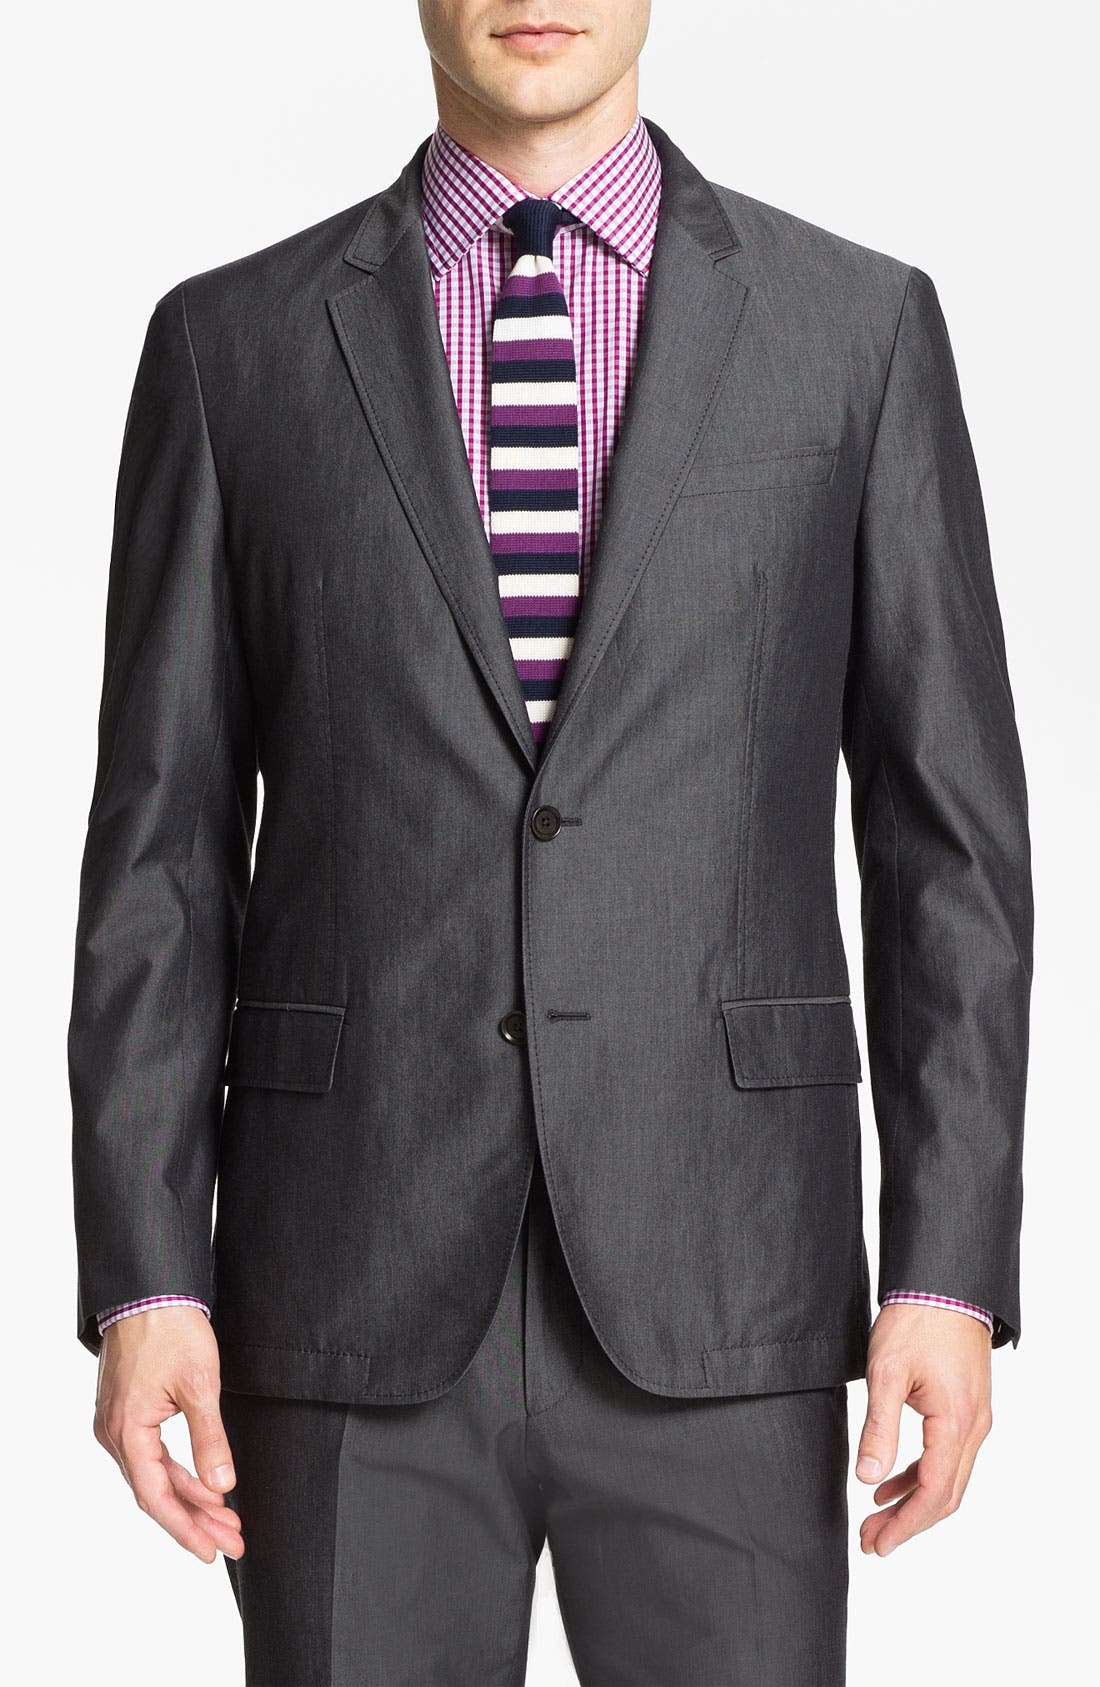 Main Image - BOSS HUGO BOSS 'Heaven/Fly' Trim Fit Cotton Blend Suit